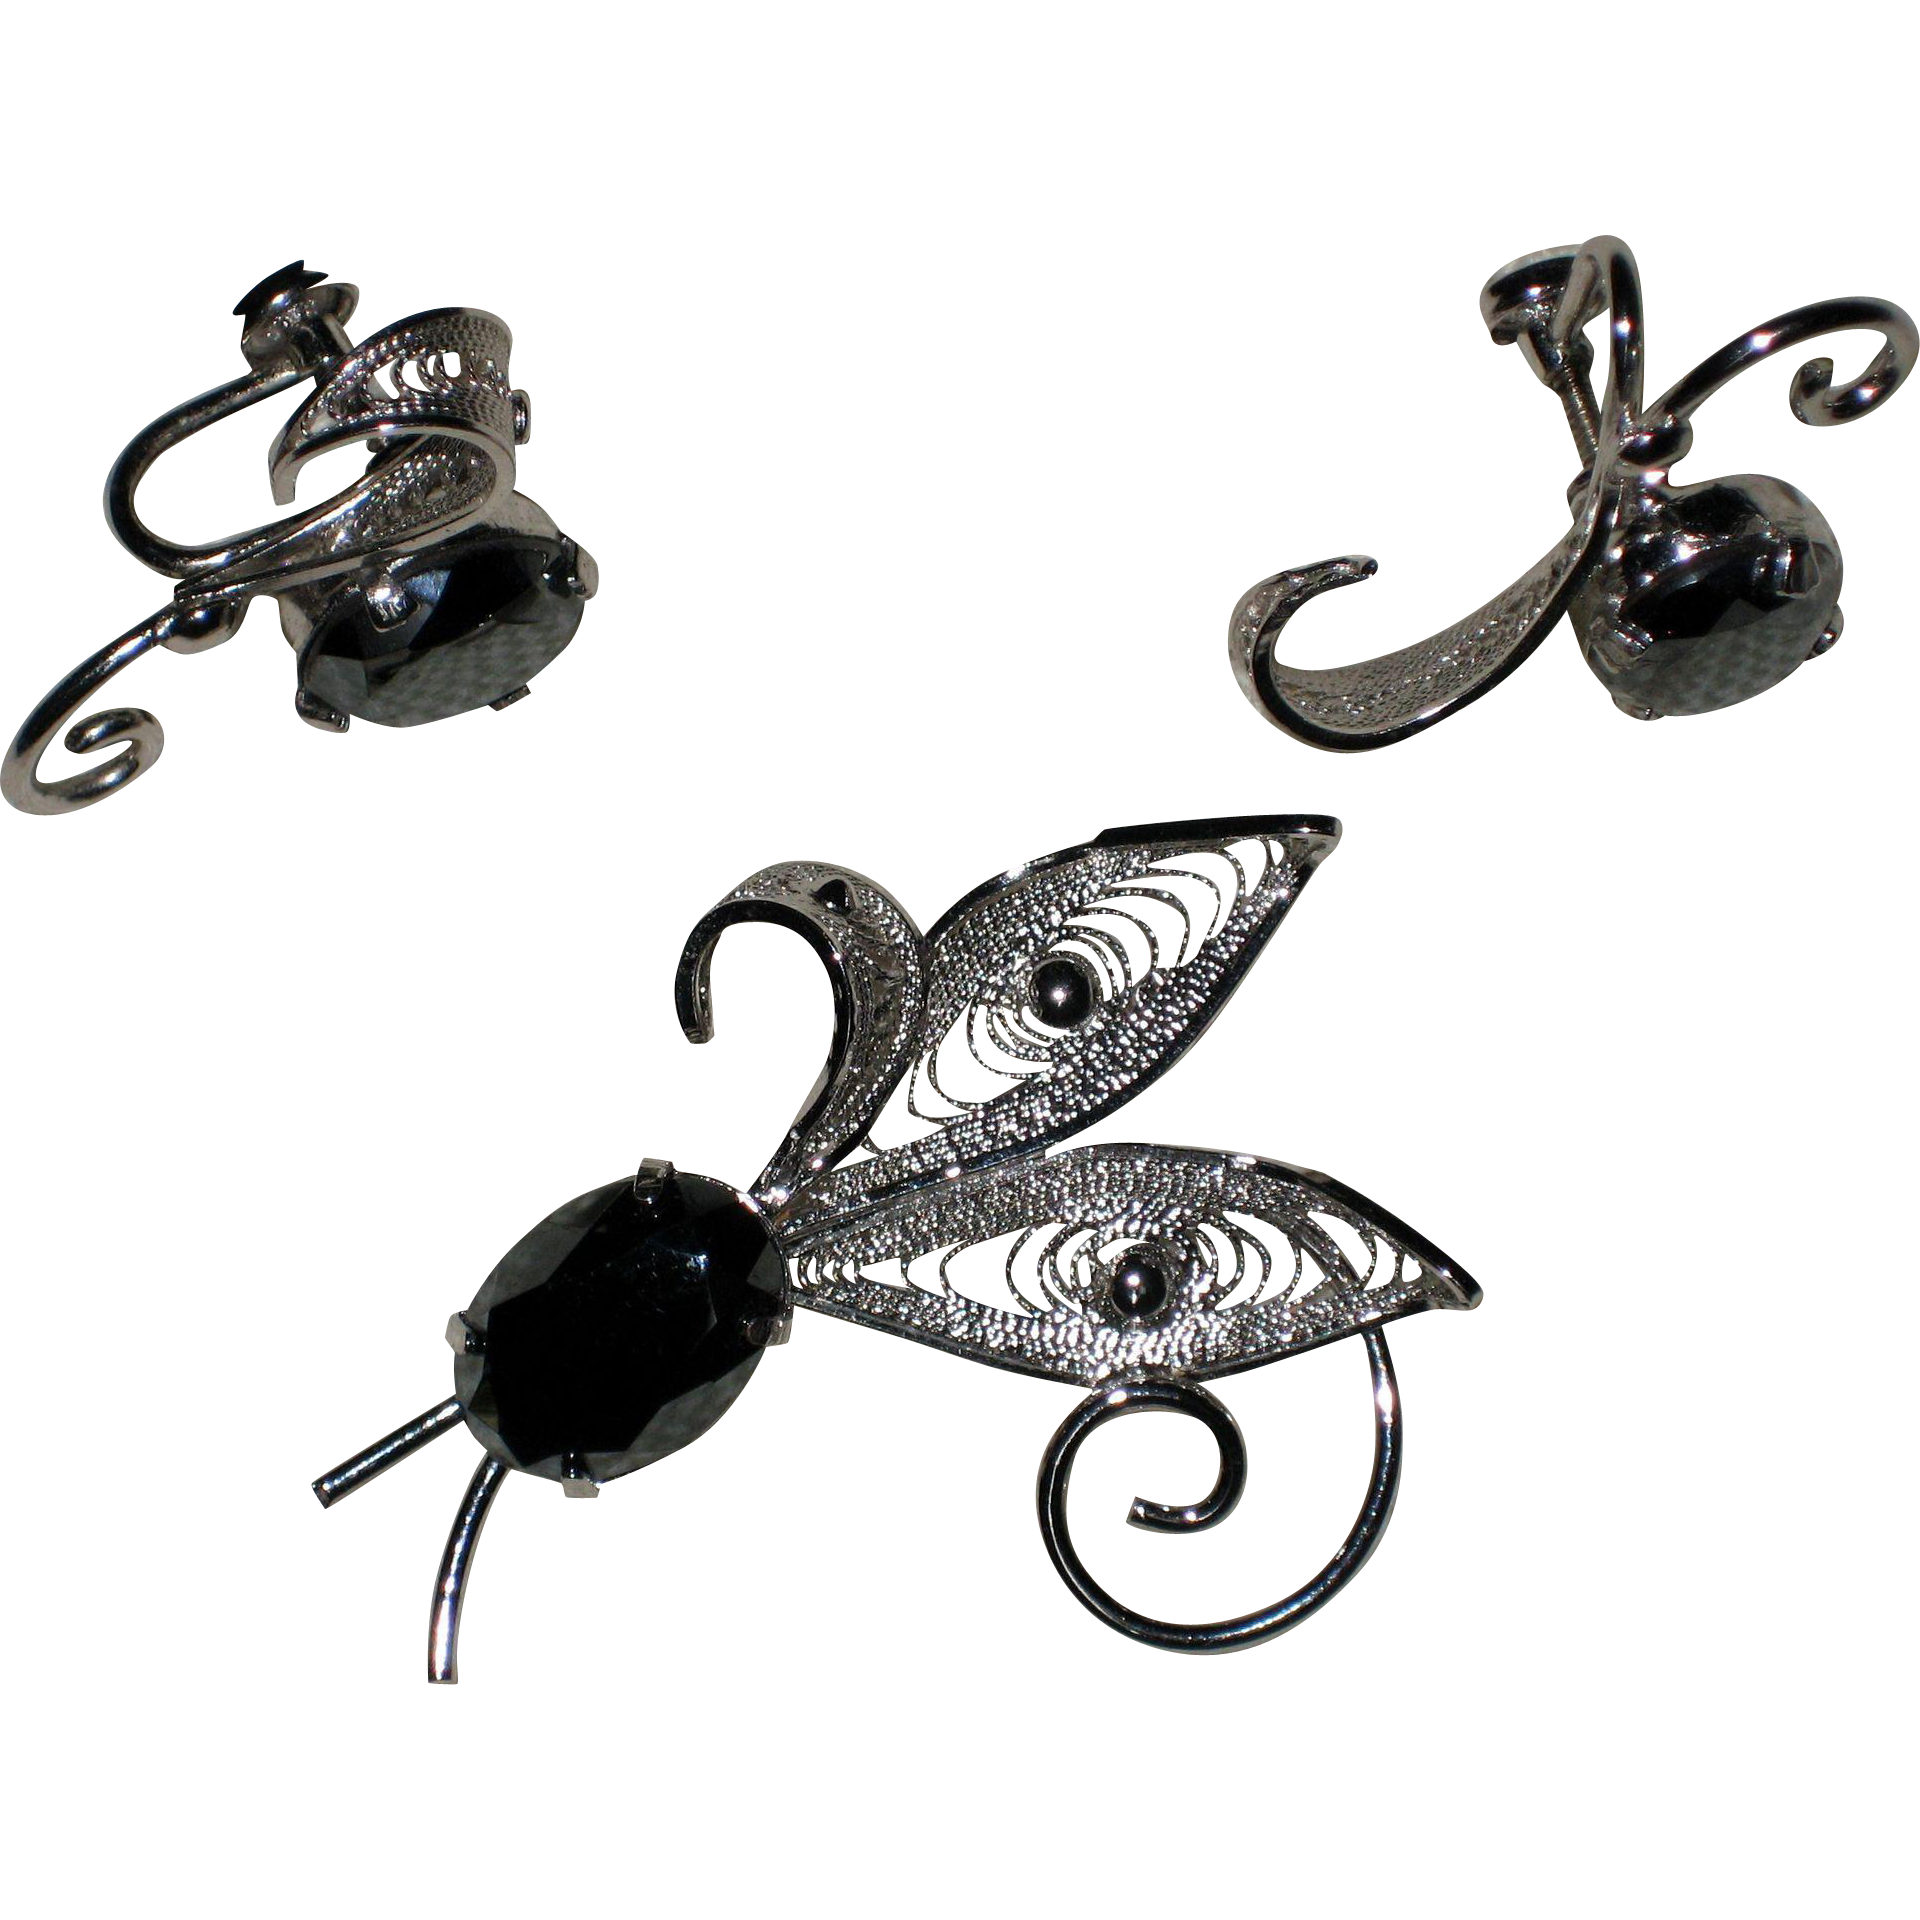 Sterling Silver Filigree Pin and Earrings with Hematite Cabachons